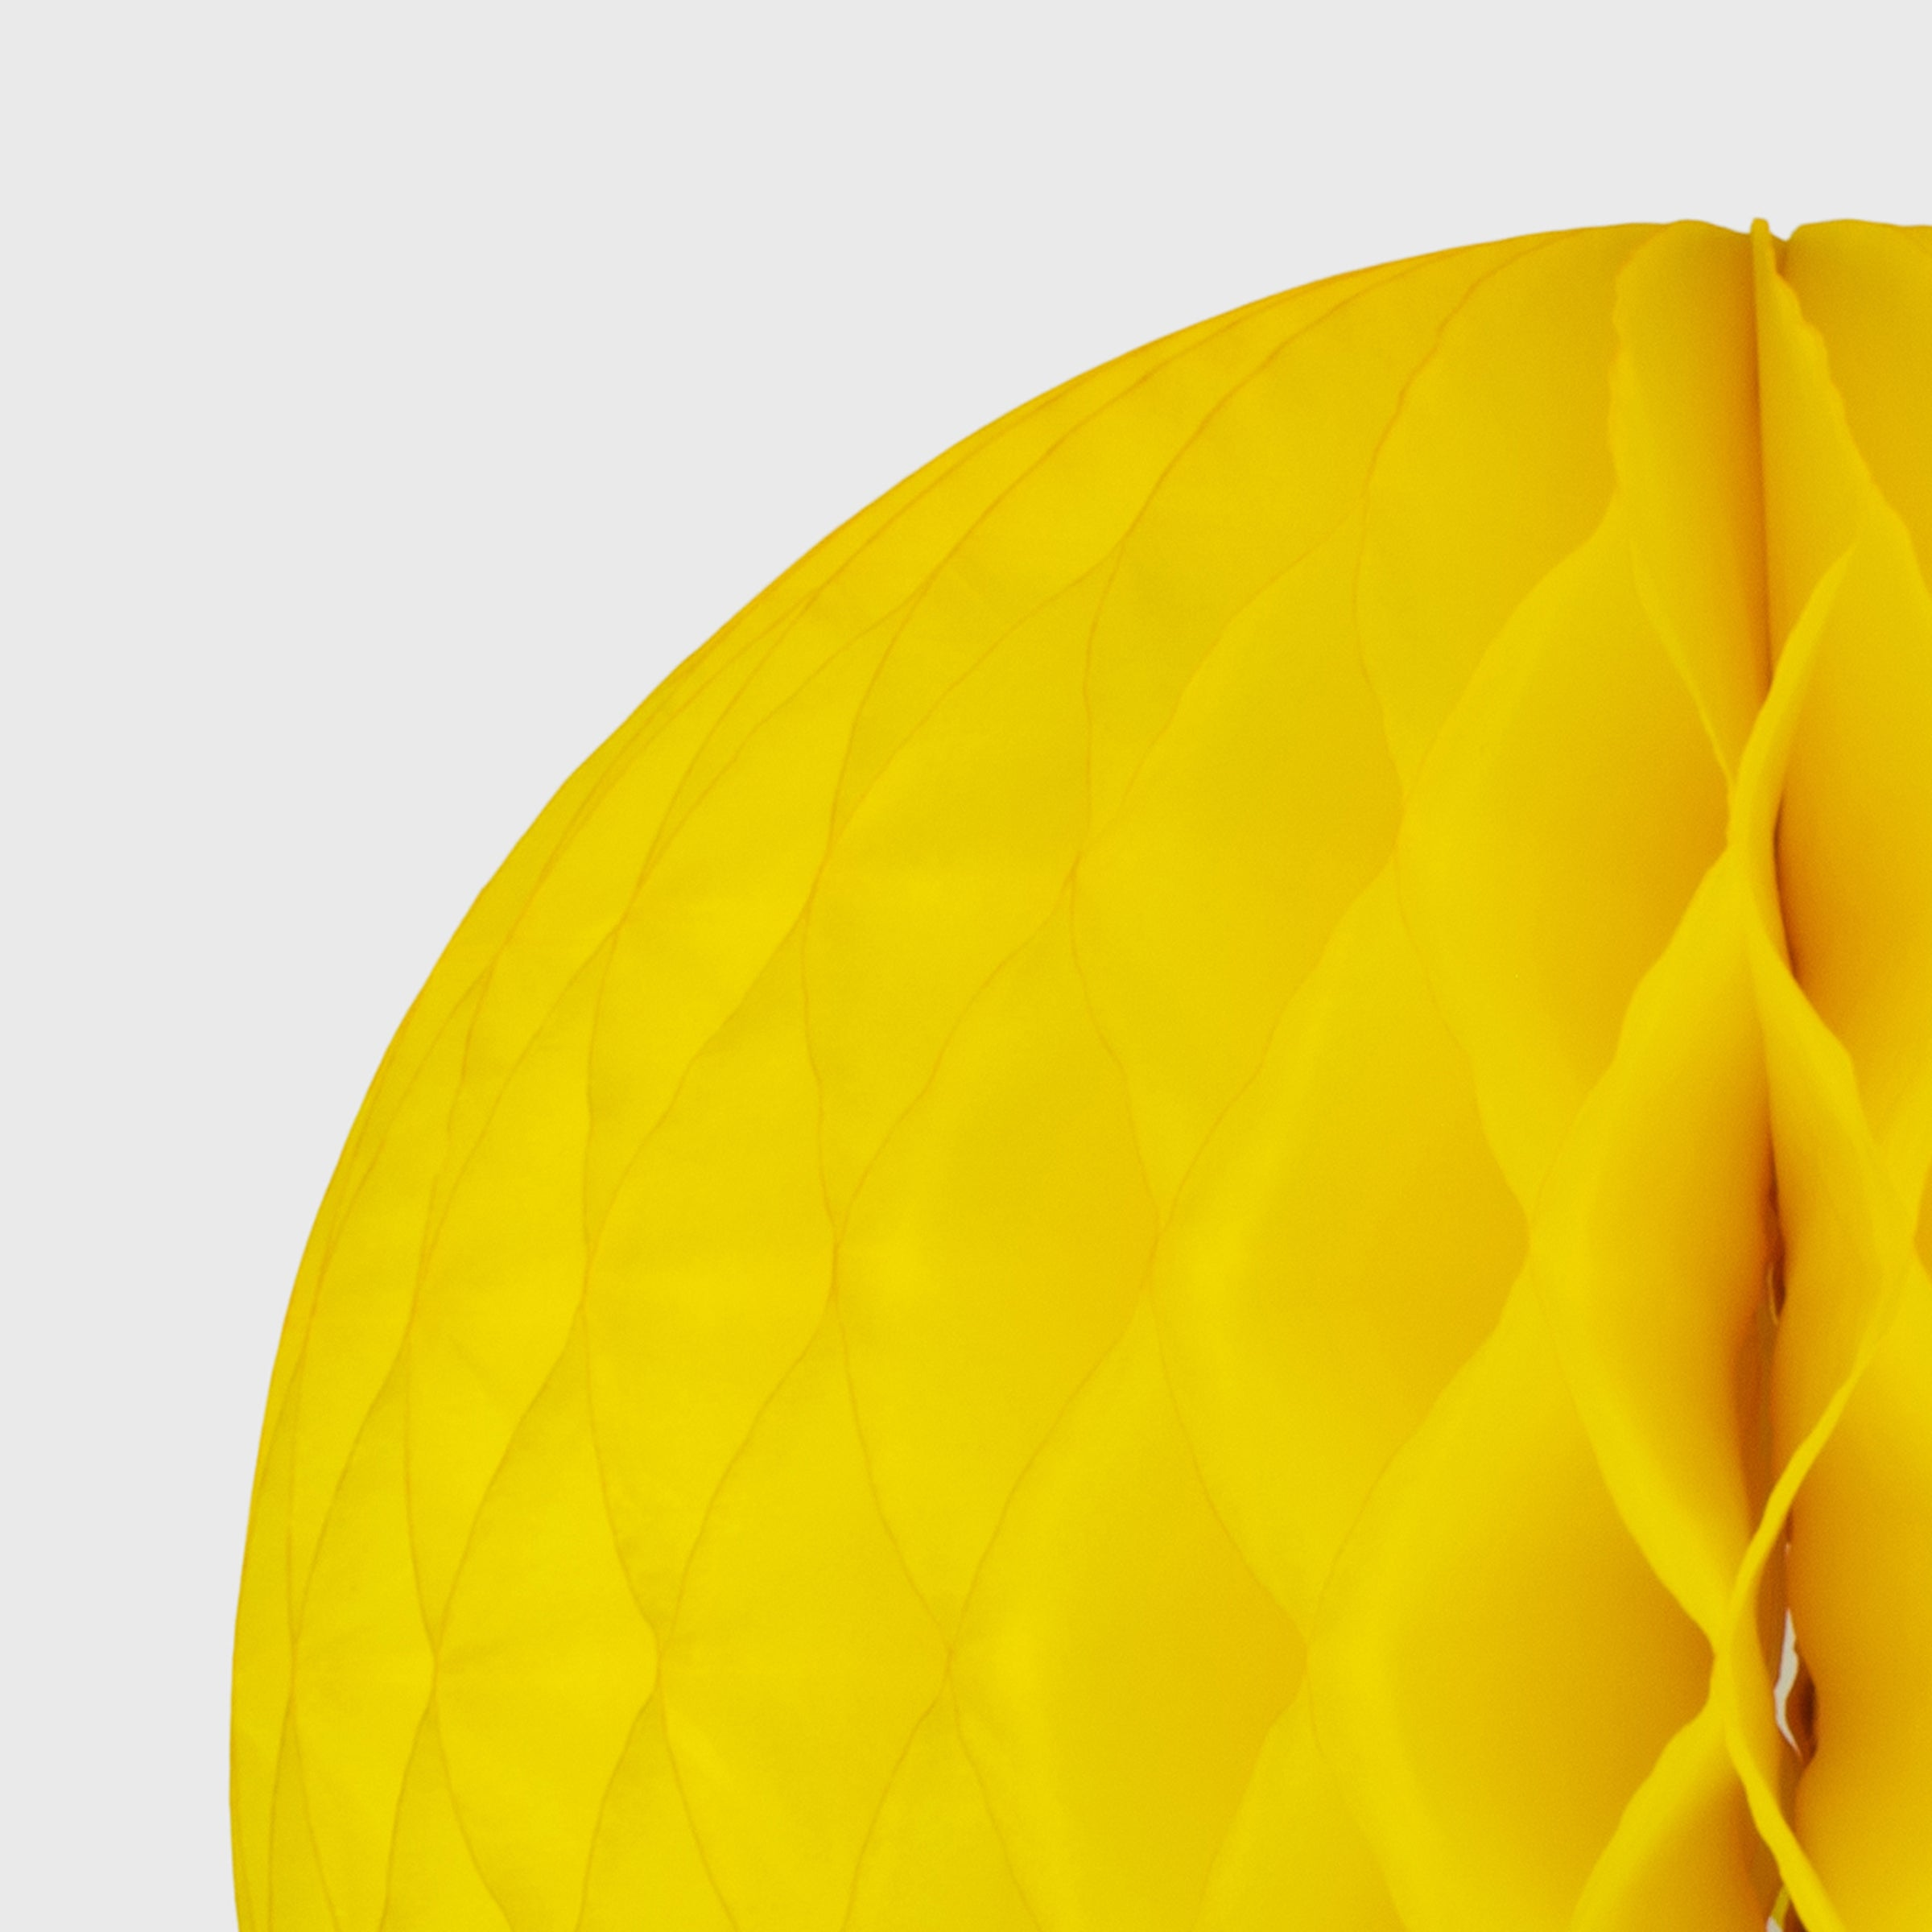 Honeycomb Ball, Bright Yellow